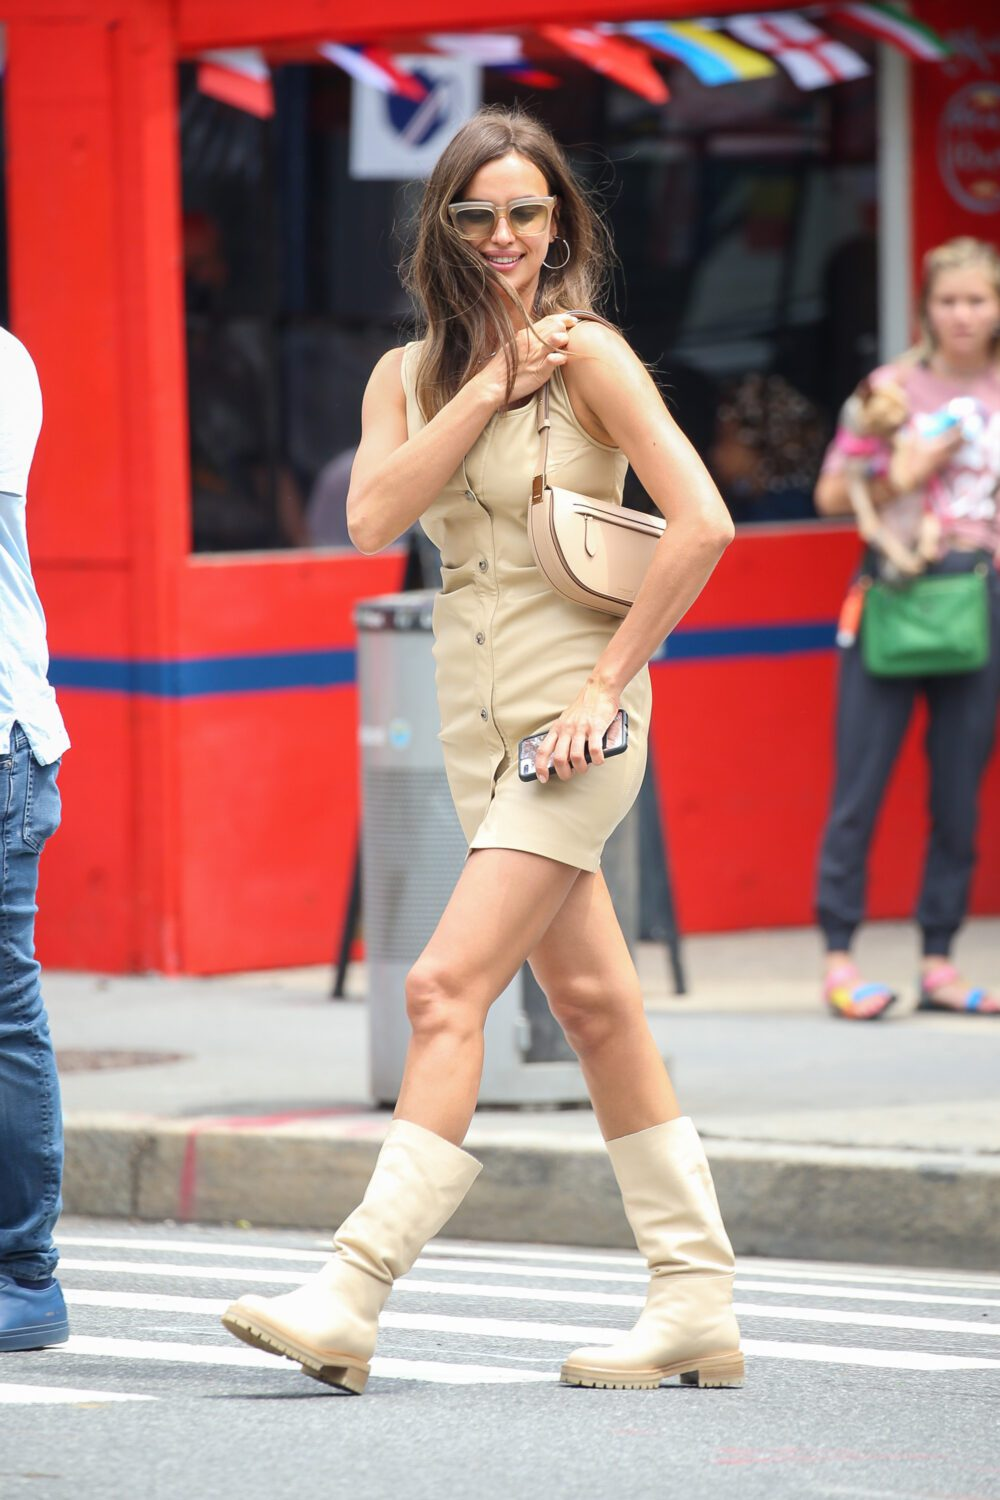 Irina Shayk wears a mini dress with matching boots while out and about in NYC